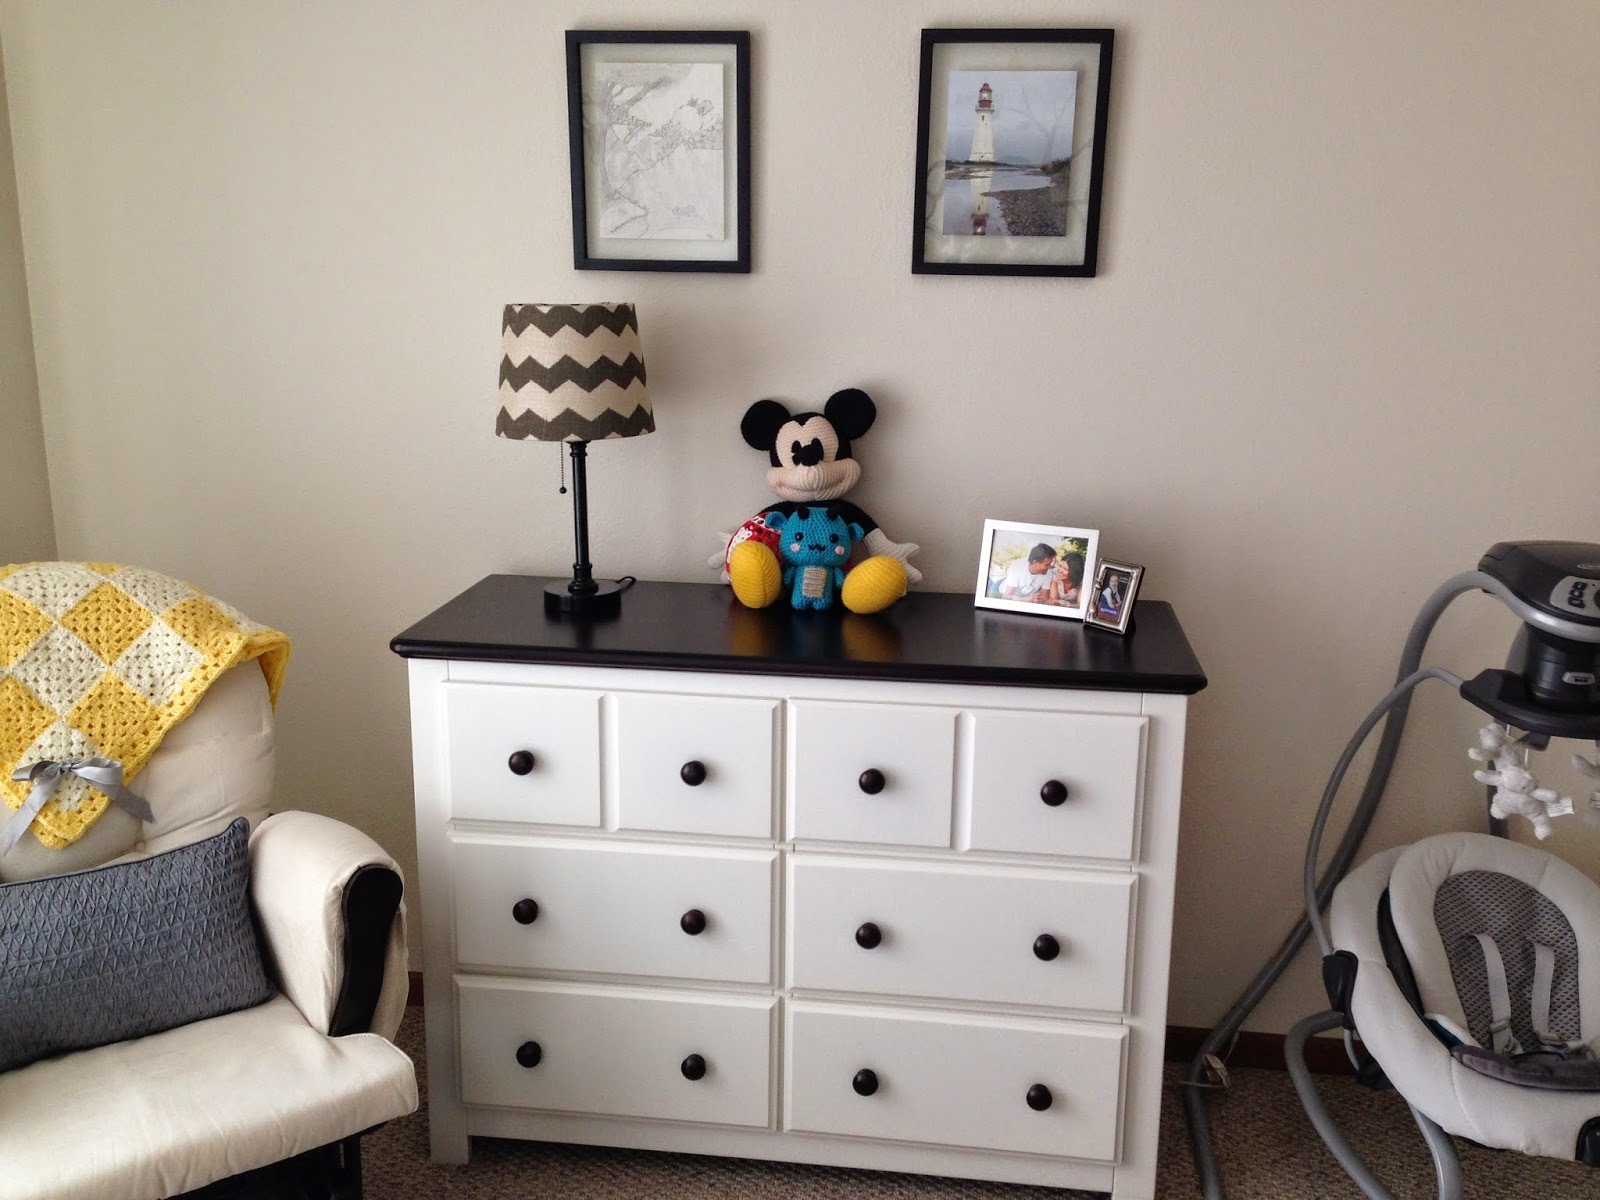 White Dresser with Lamp and Decor